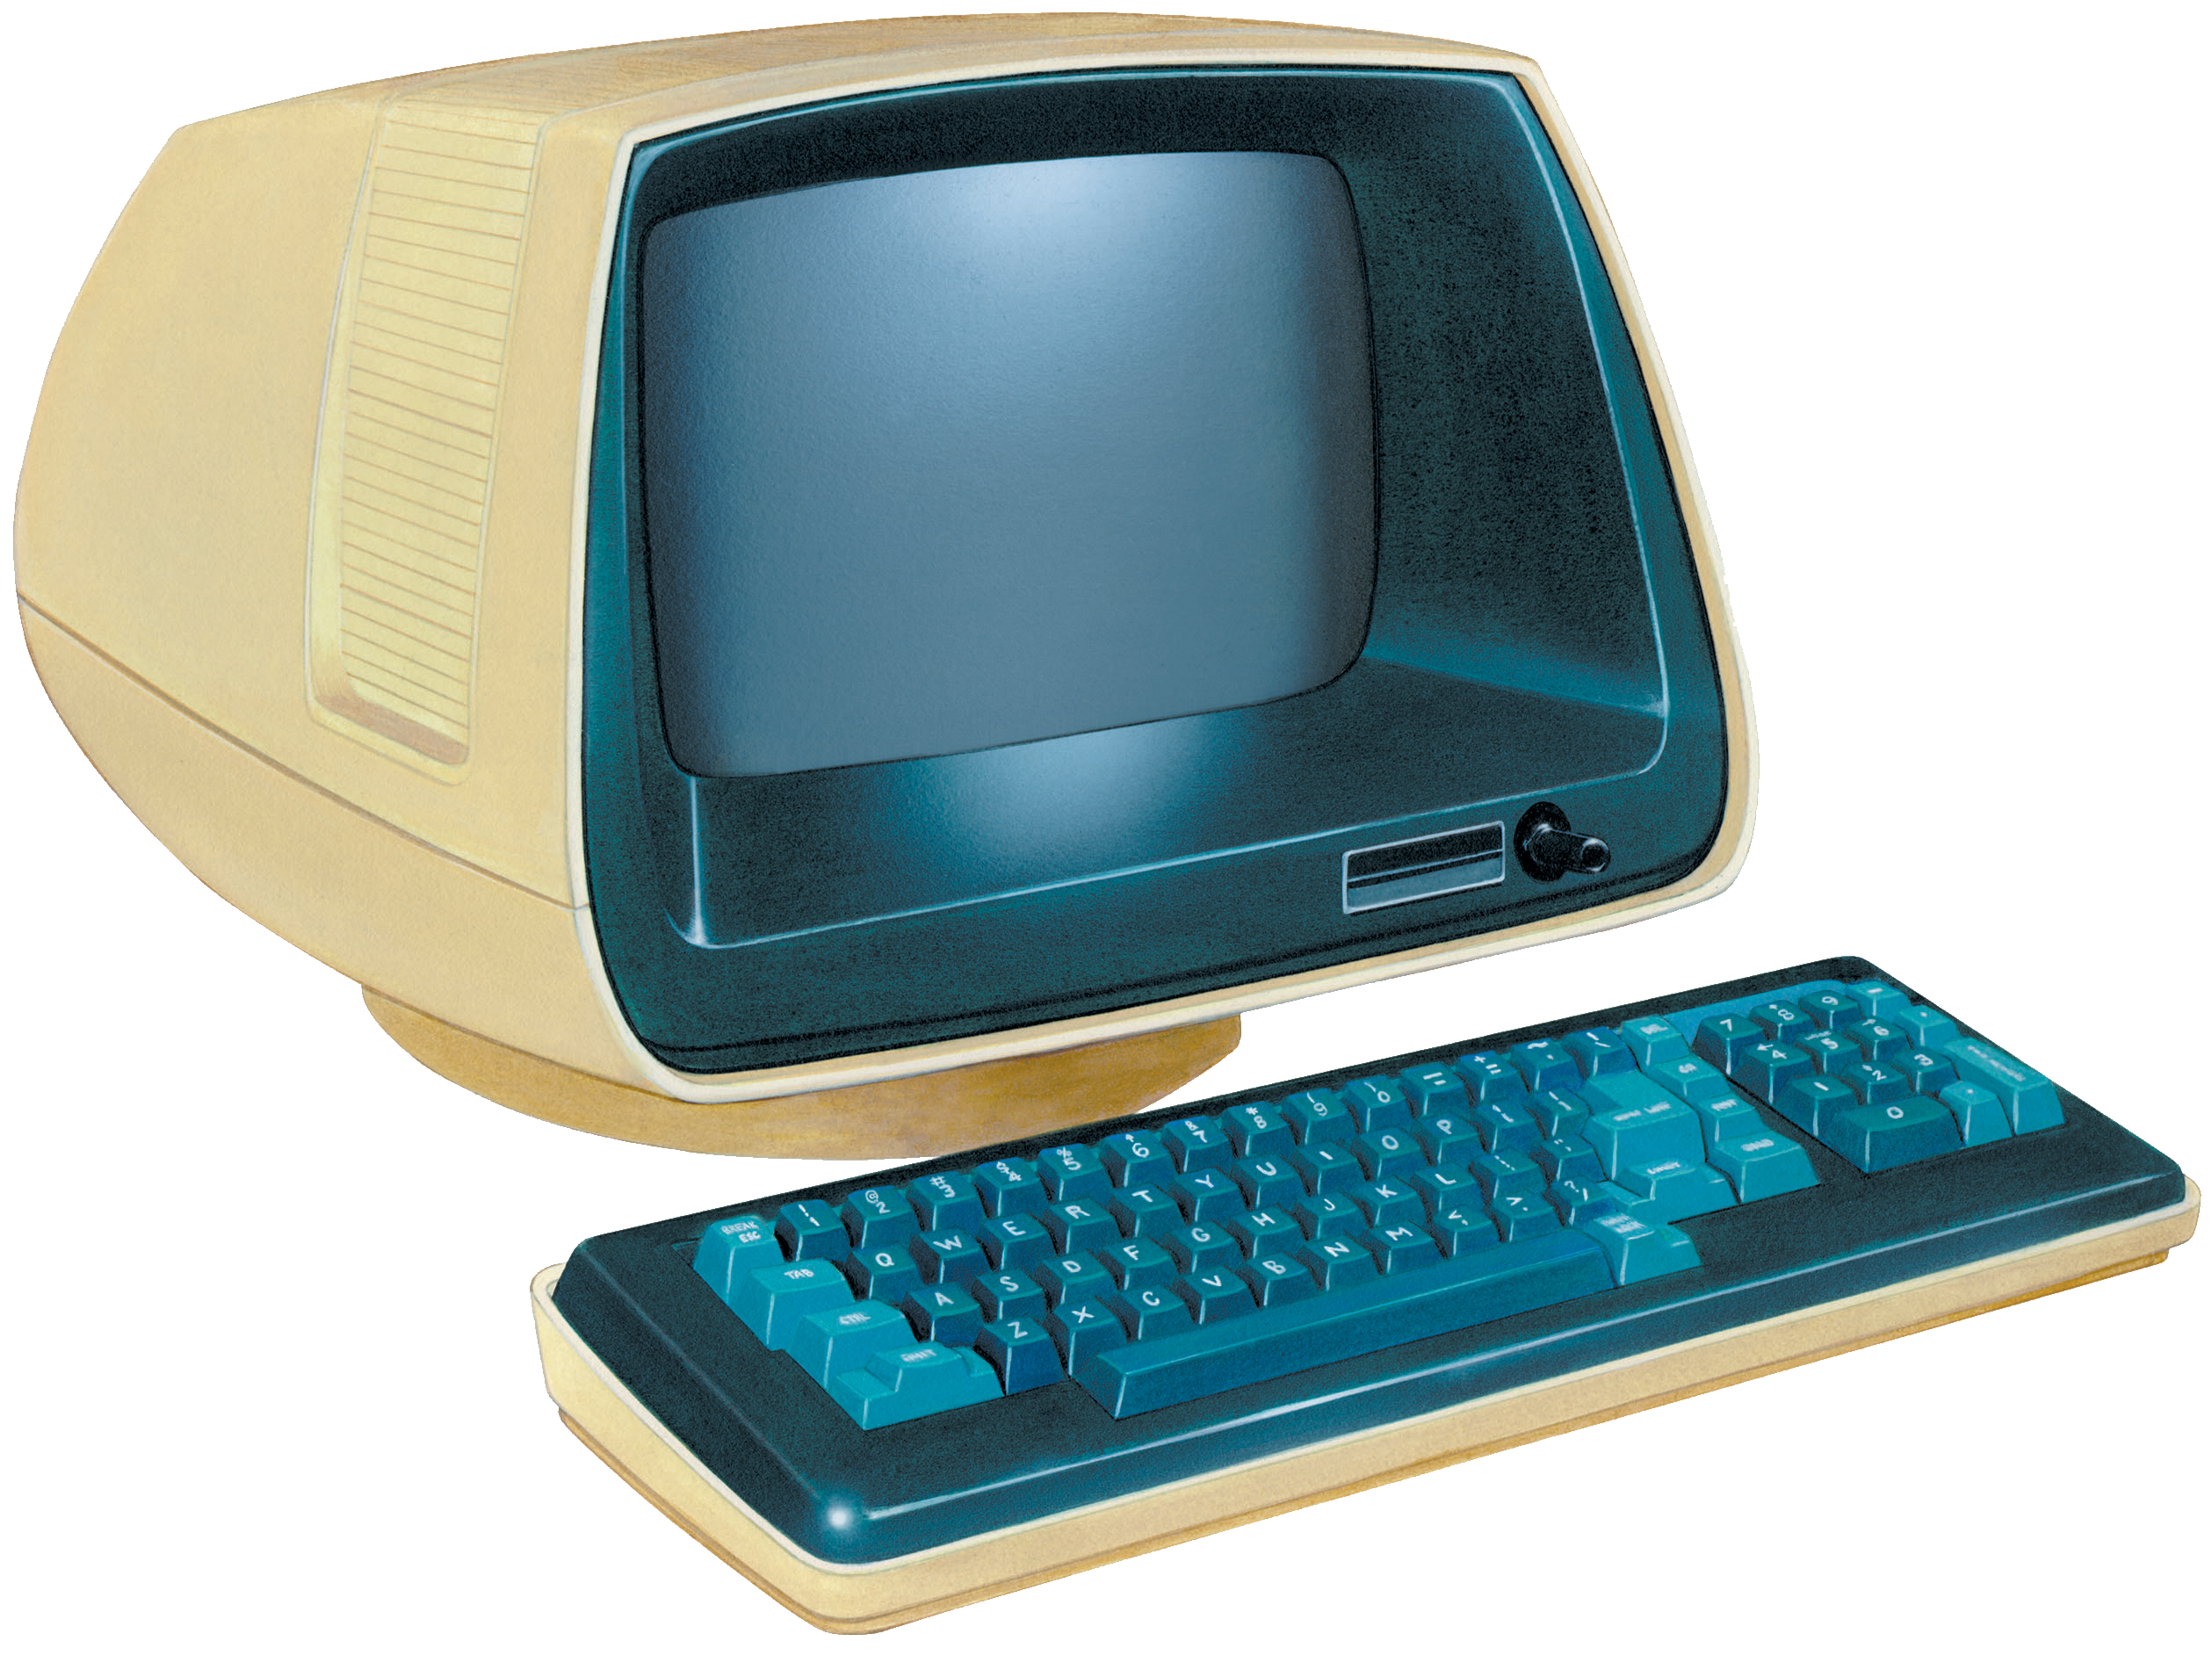 retro_computer_png_by_absurdwordpreferred